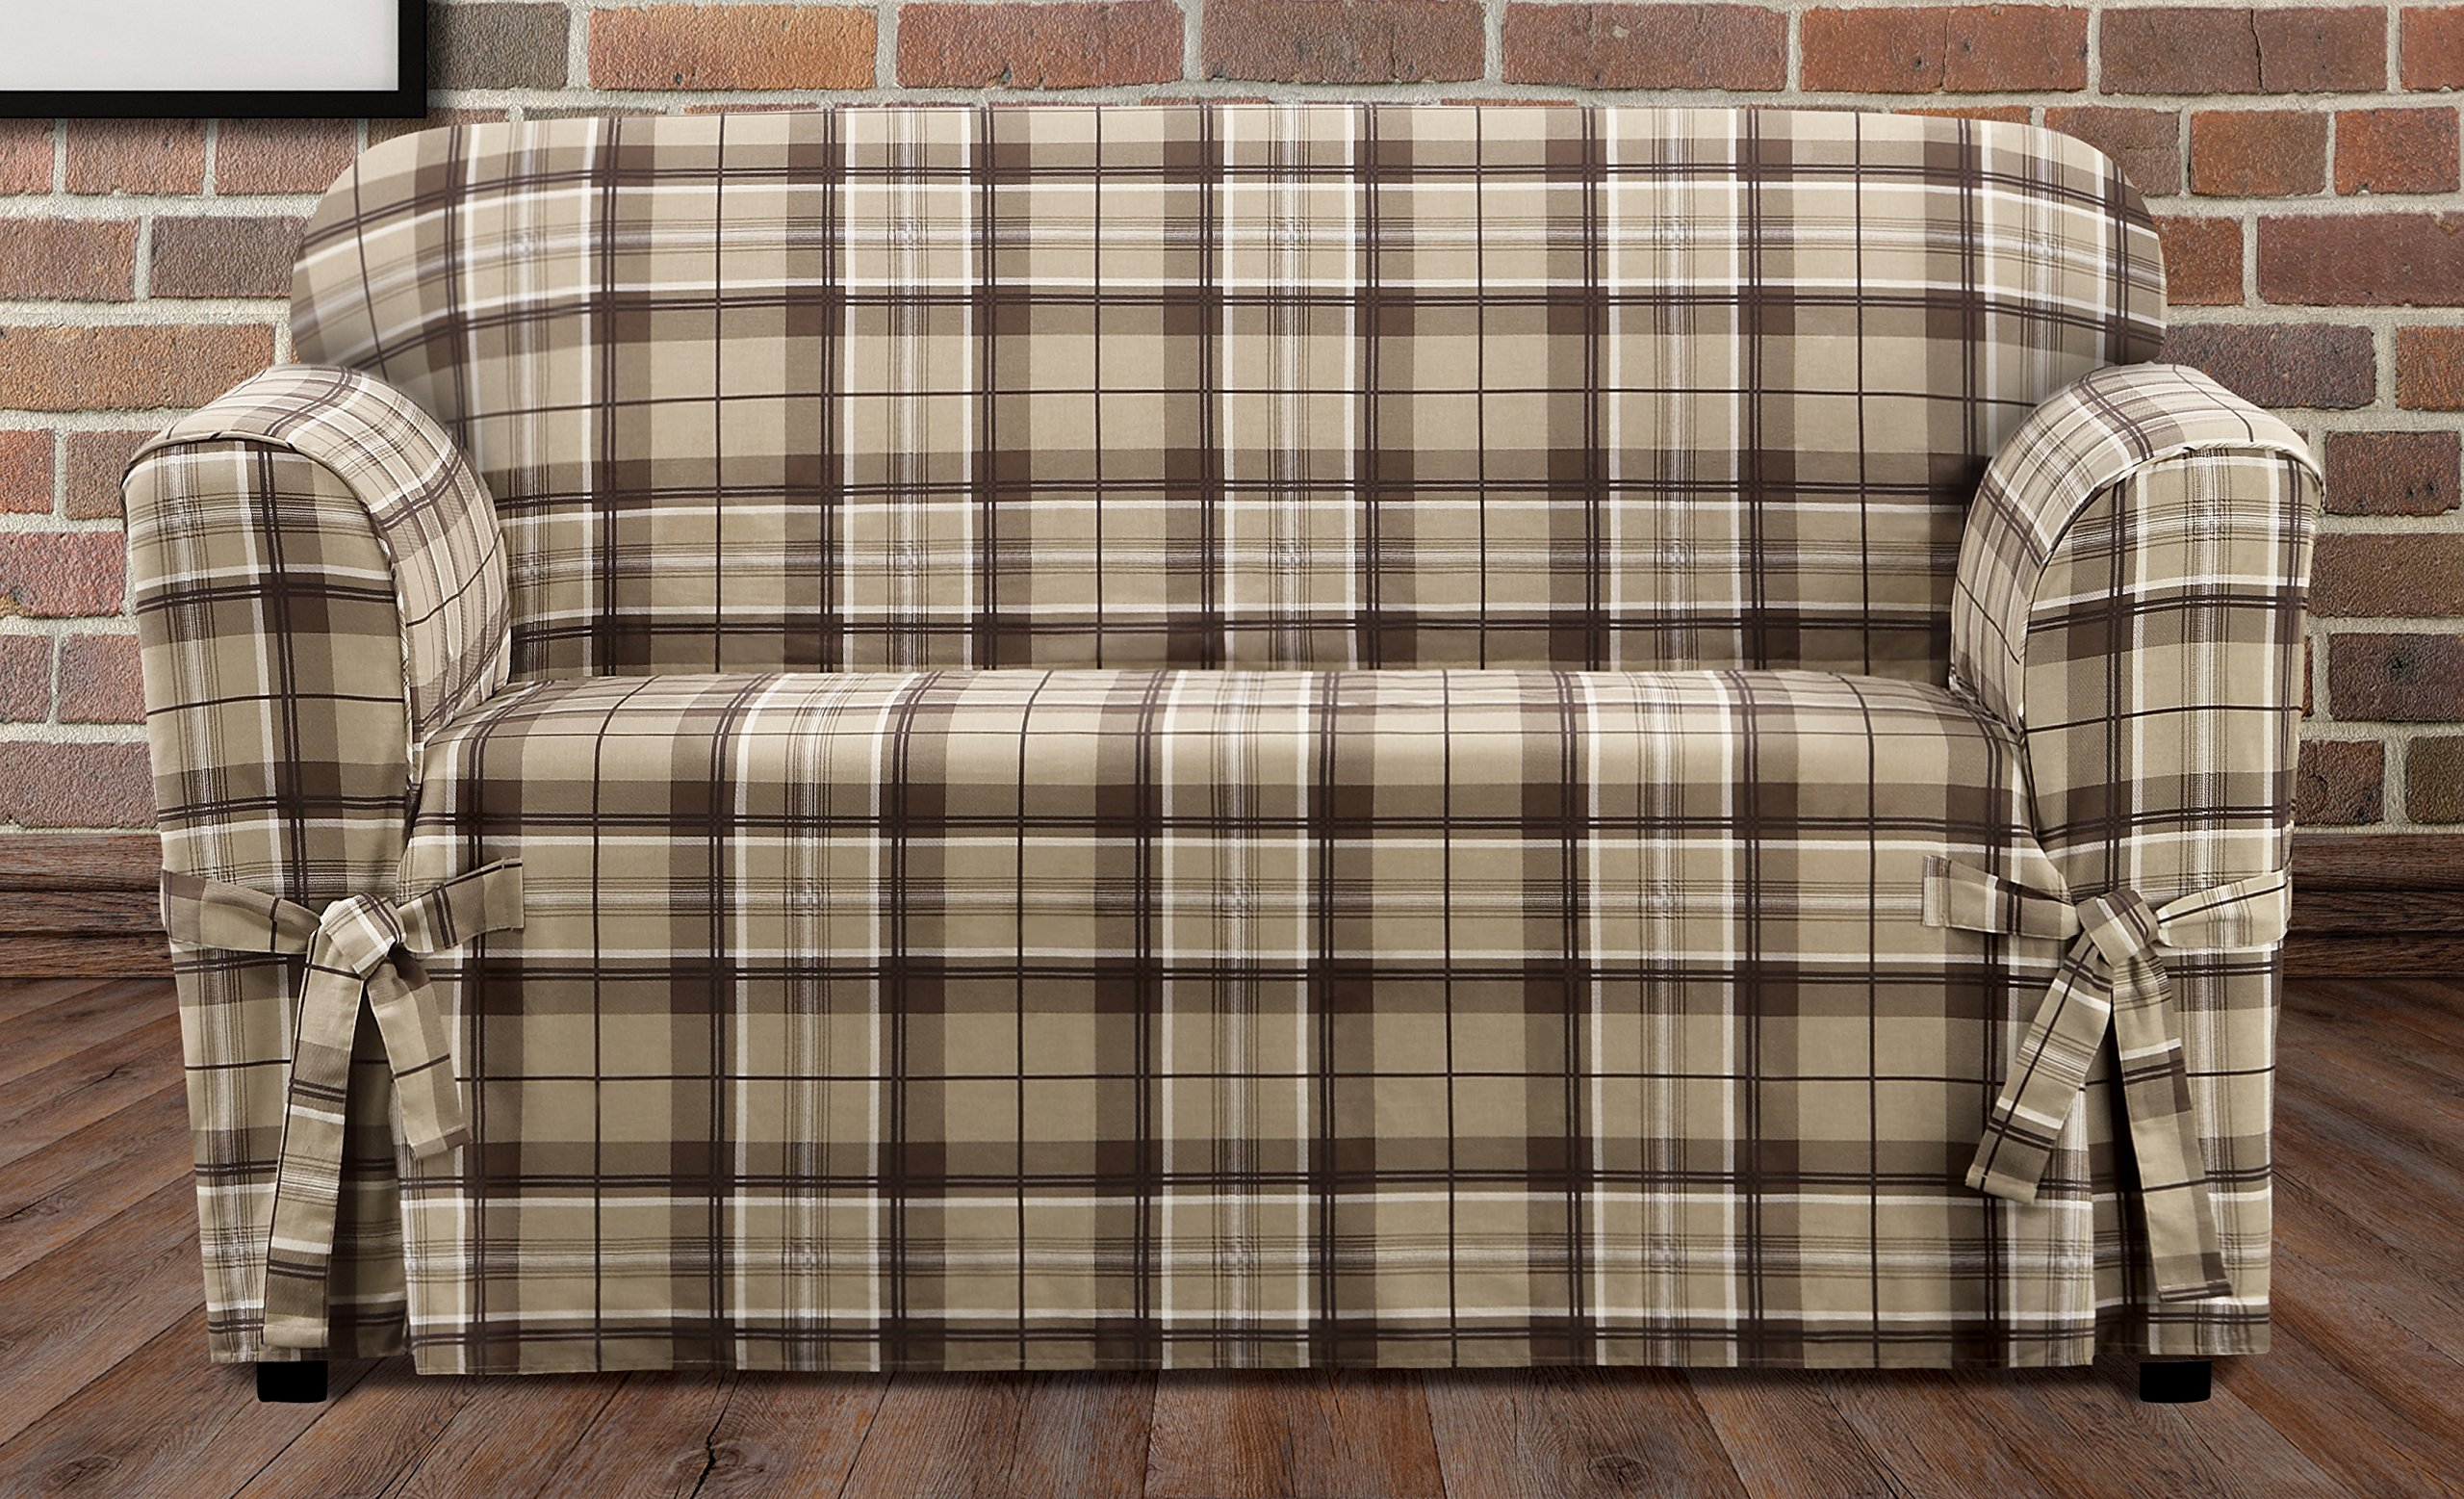 Sure Fit SF46426 Highland Plaid 1 Piece Loveseat Slipcover, Tan by Surefit